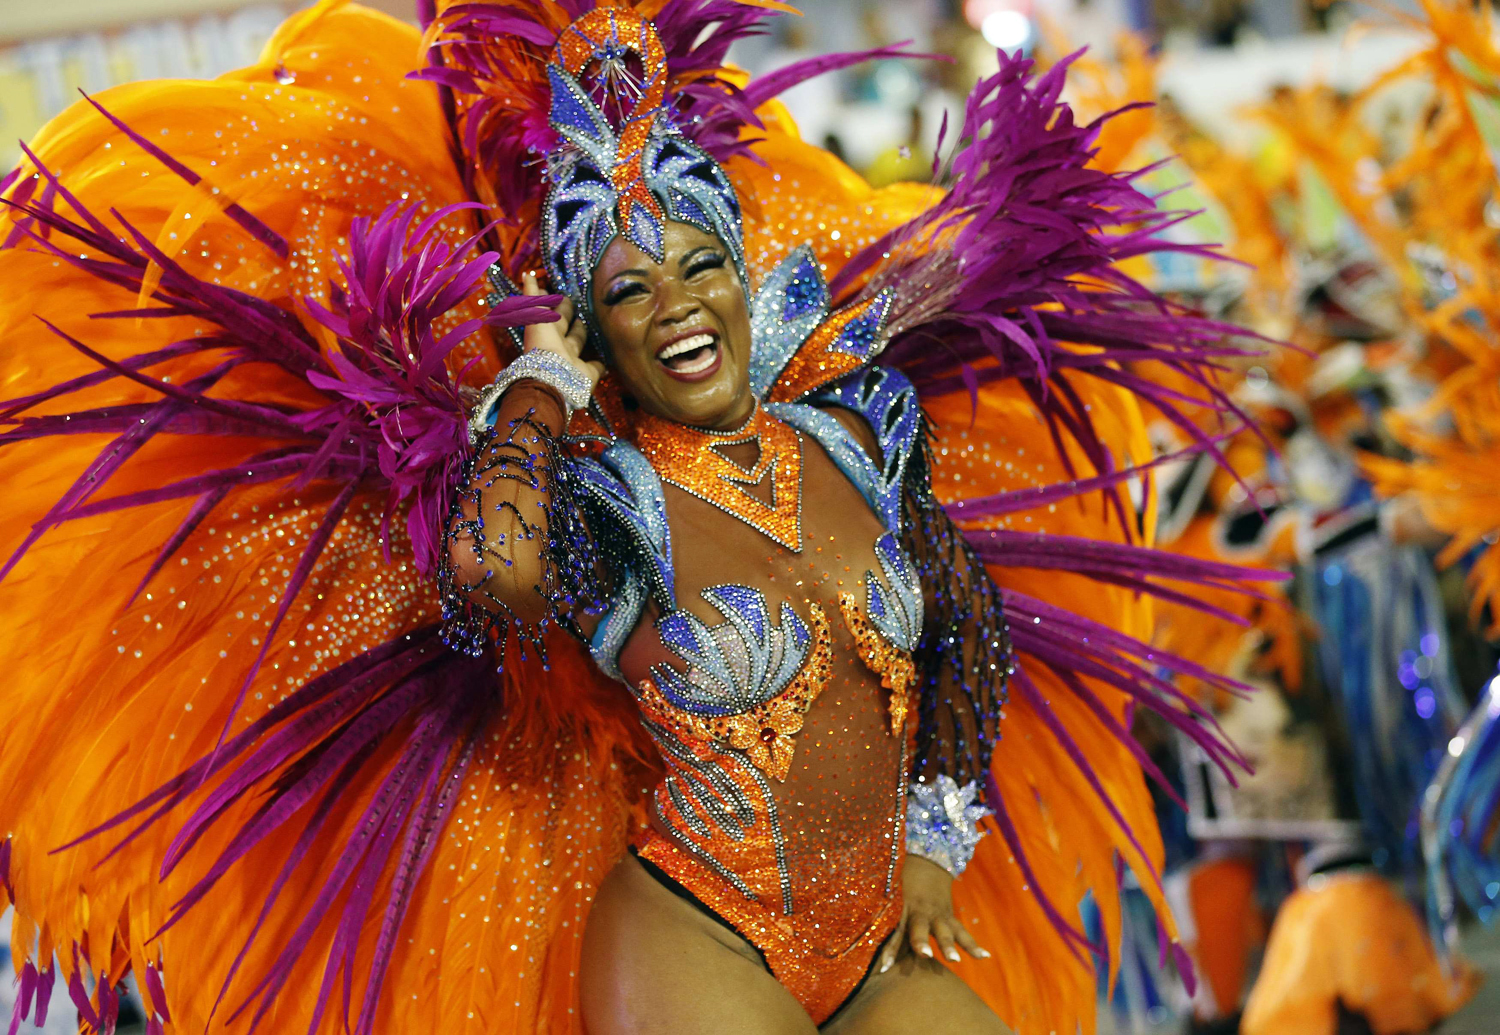 https://media3.s-nbcnews.com/i/MSNBC/Components/Slideshows/_production/ss-130207-brazil-carnival/ss-130211-brazil-carnival-18.jpg